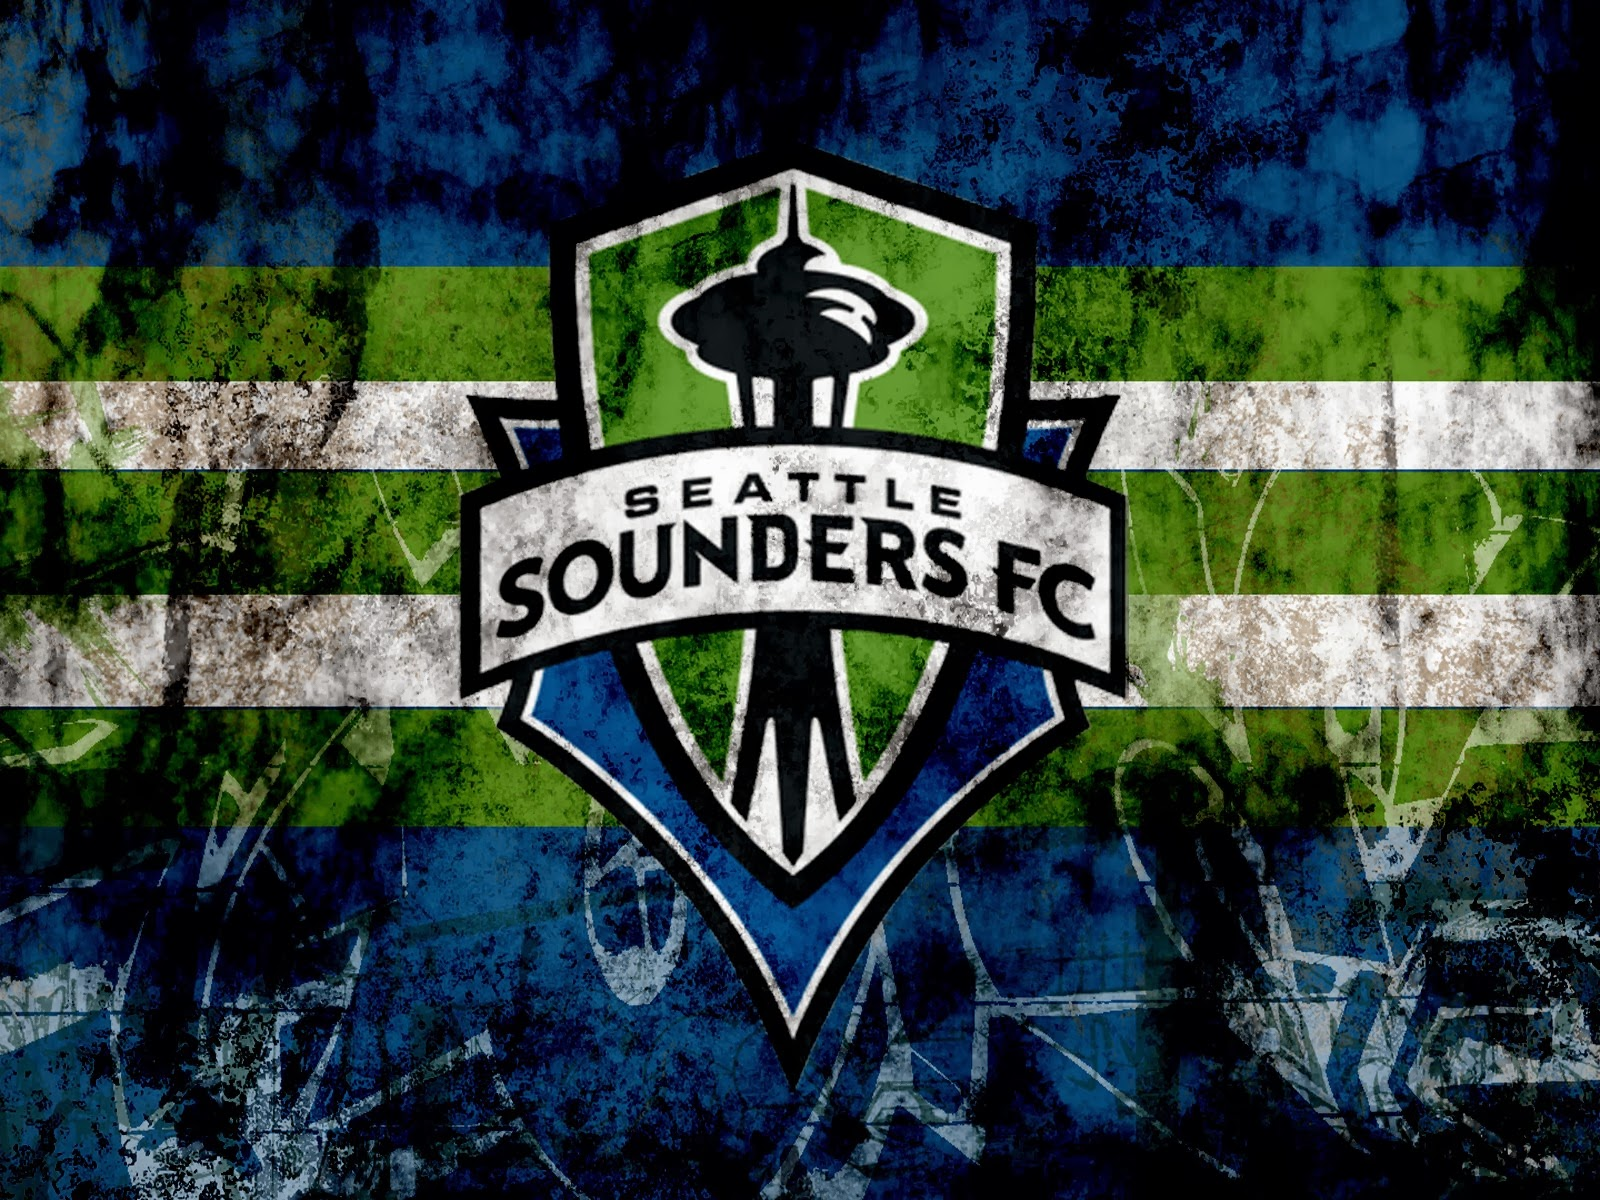 Seattle Sounders Fc HD Wallpapers And Photos download 1600x1200